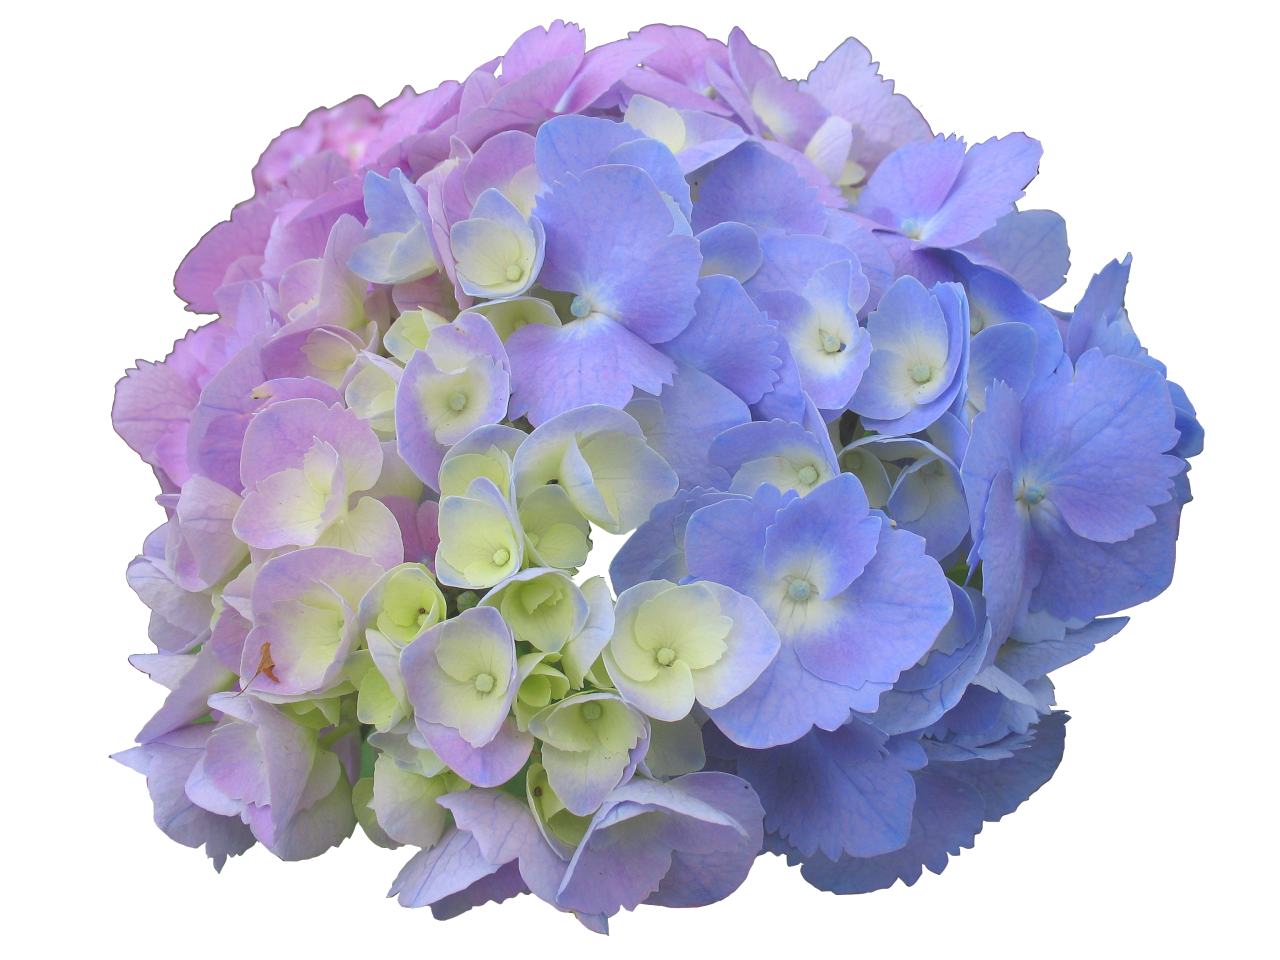 Transparencsee there are a. Hydrangea transparent graphic free stock